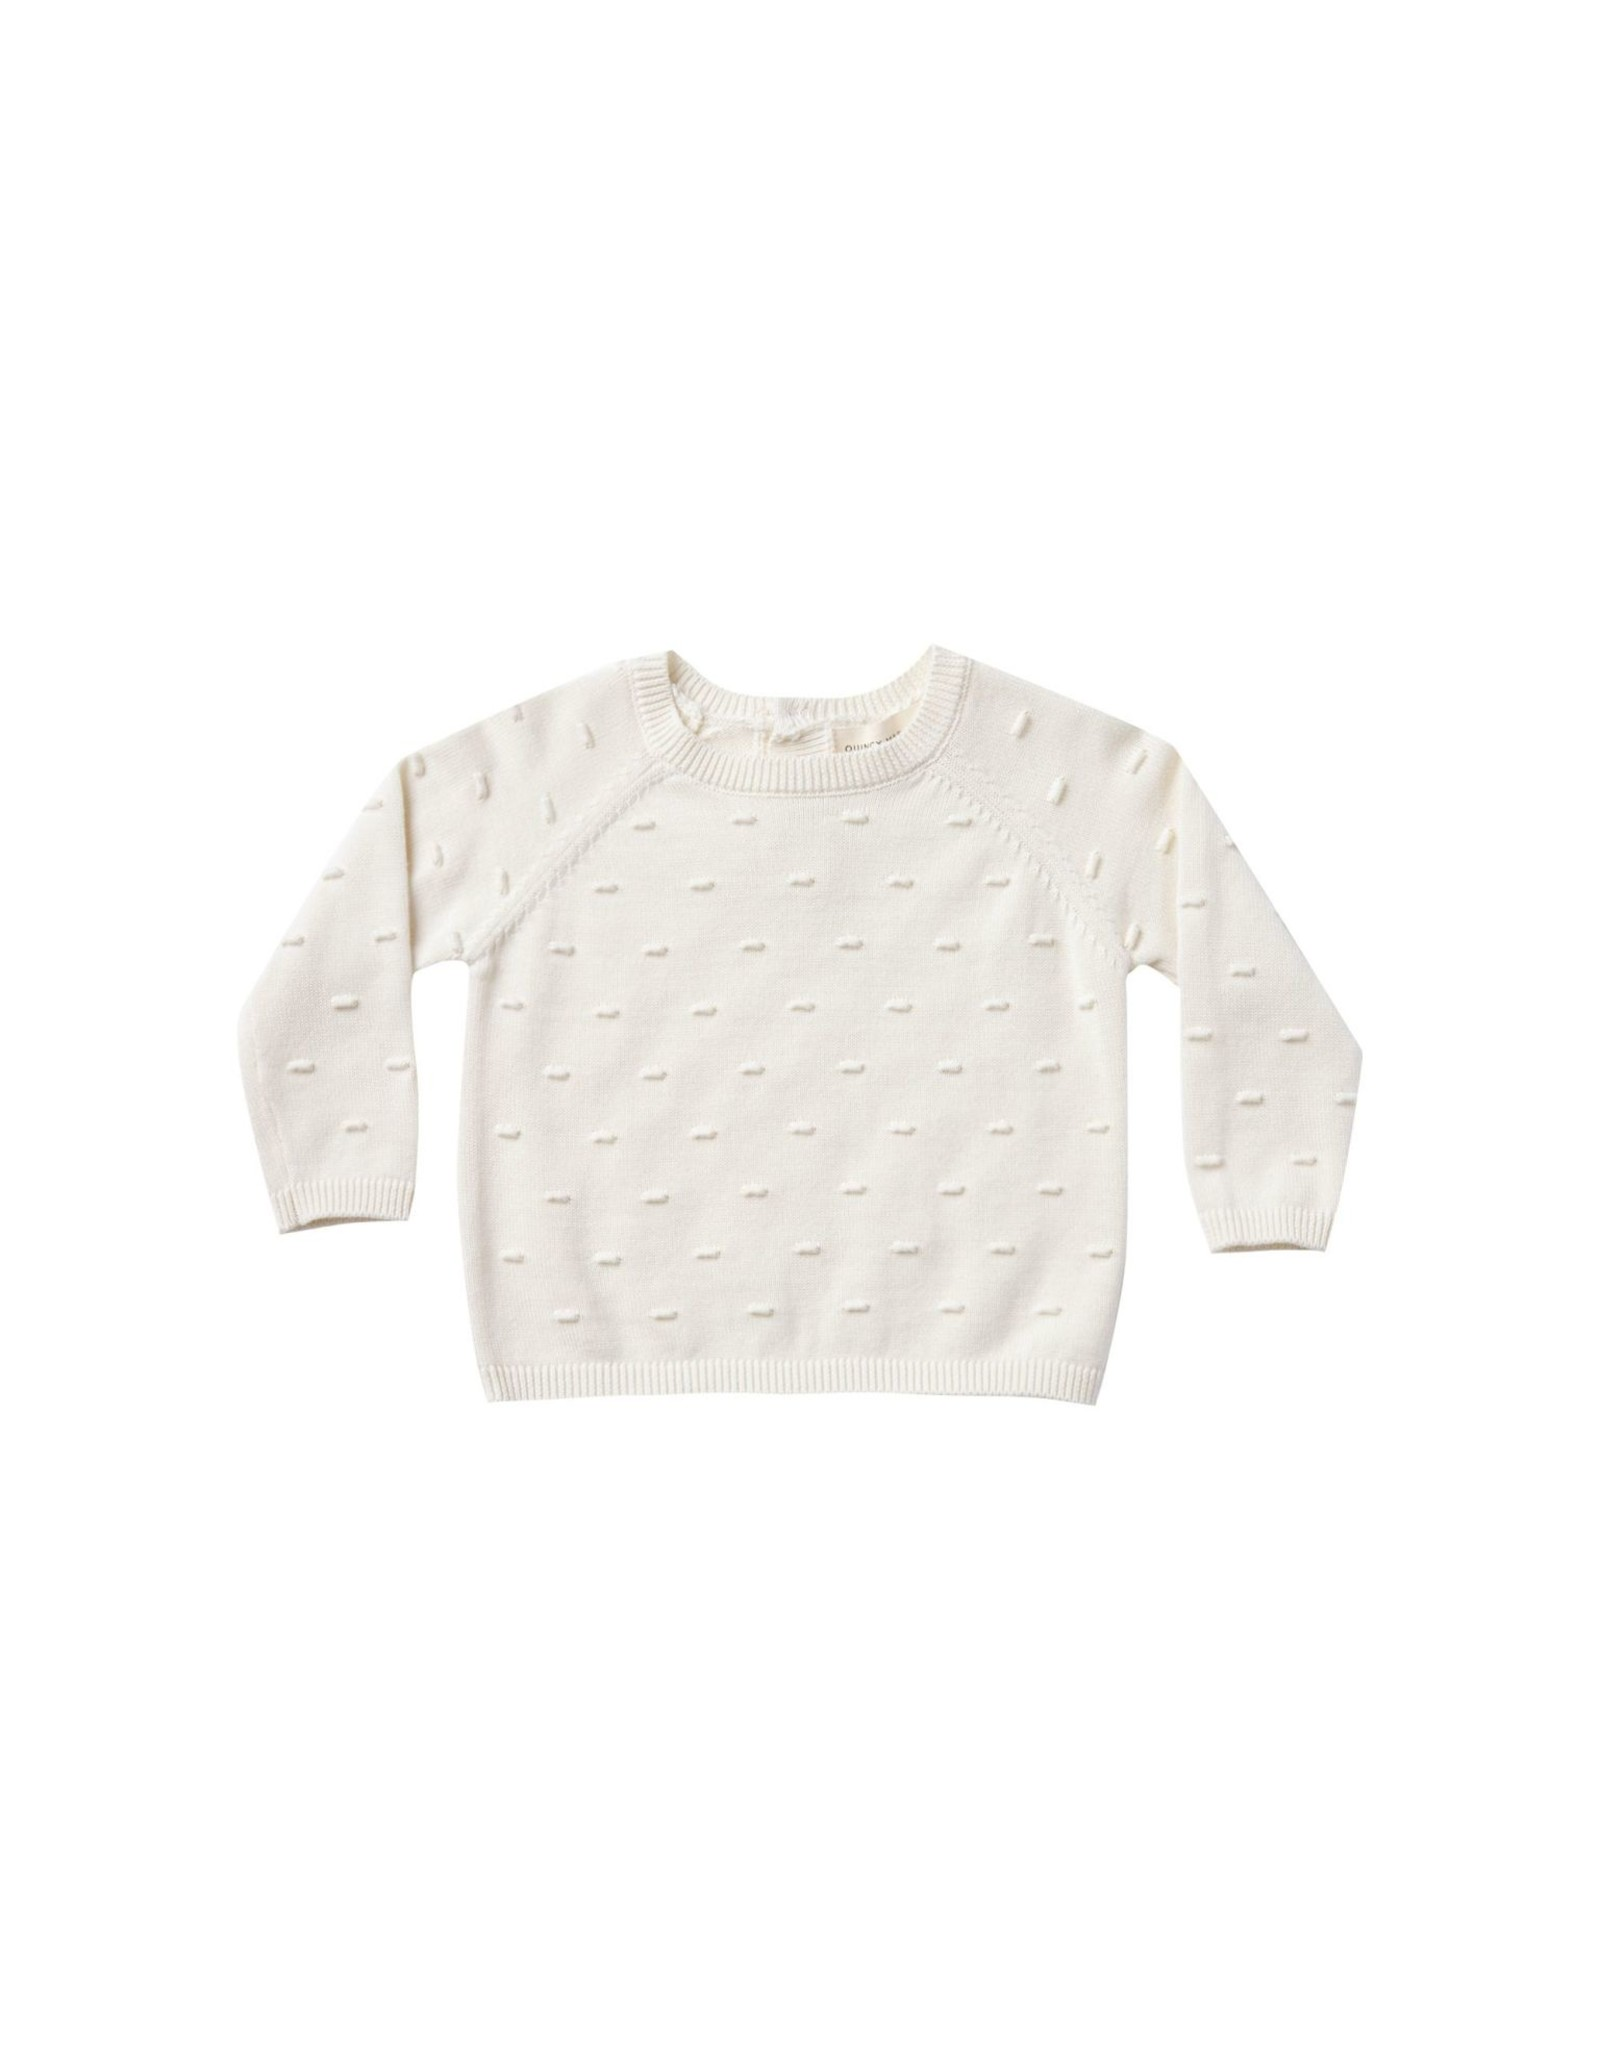 Quincy Mae bailey knit sweater- ivory